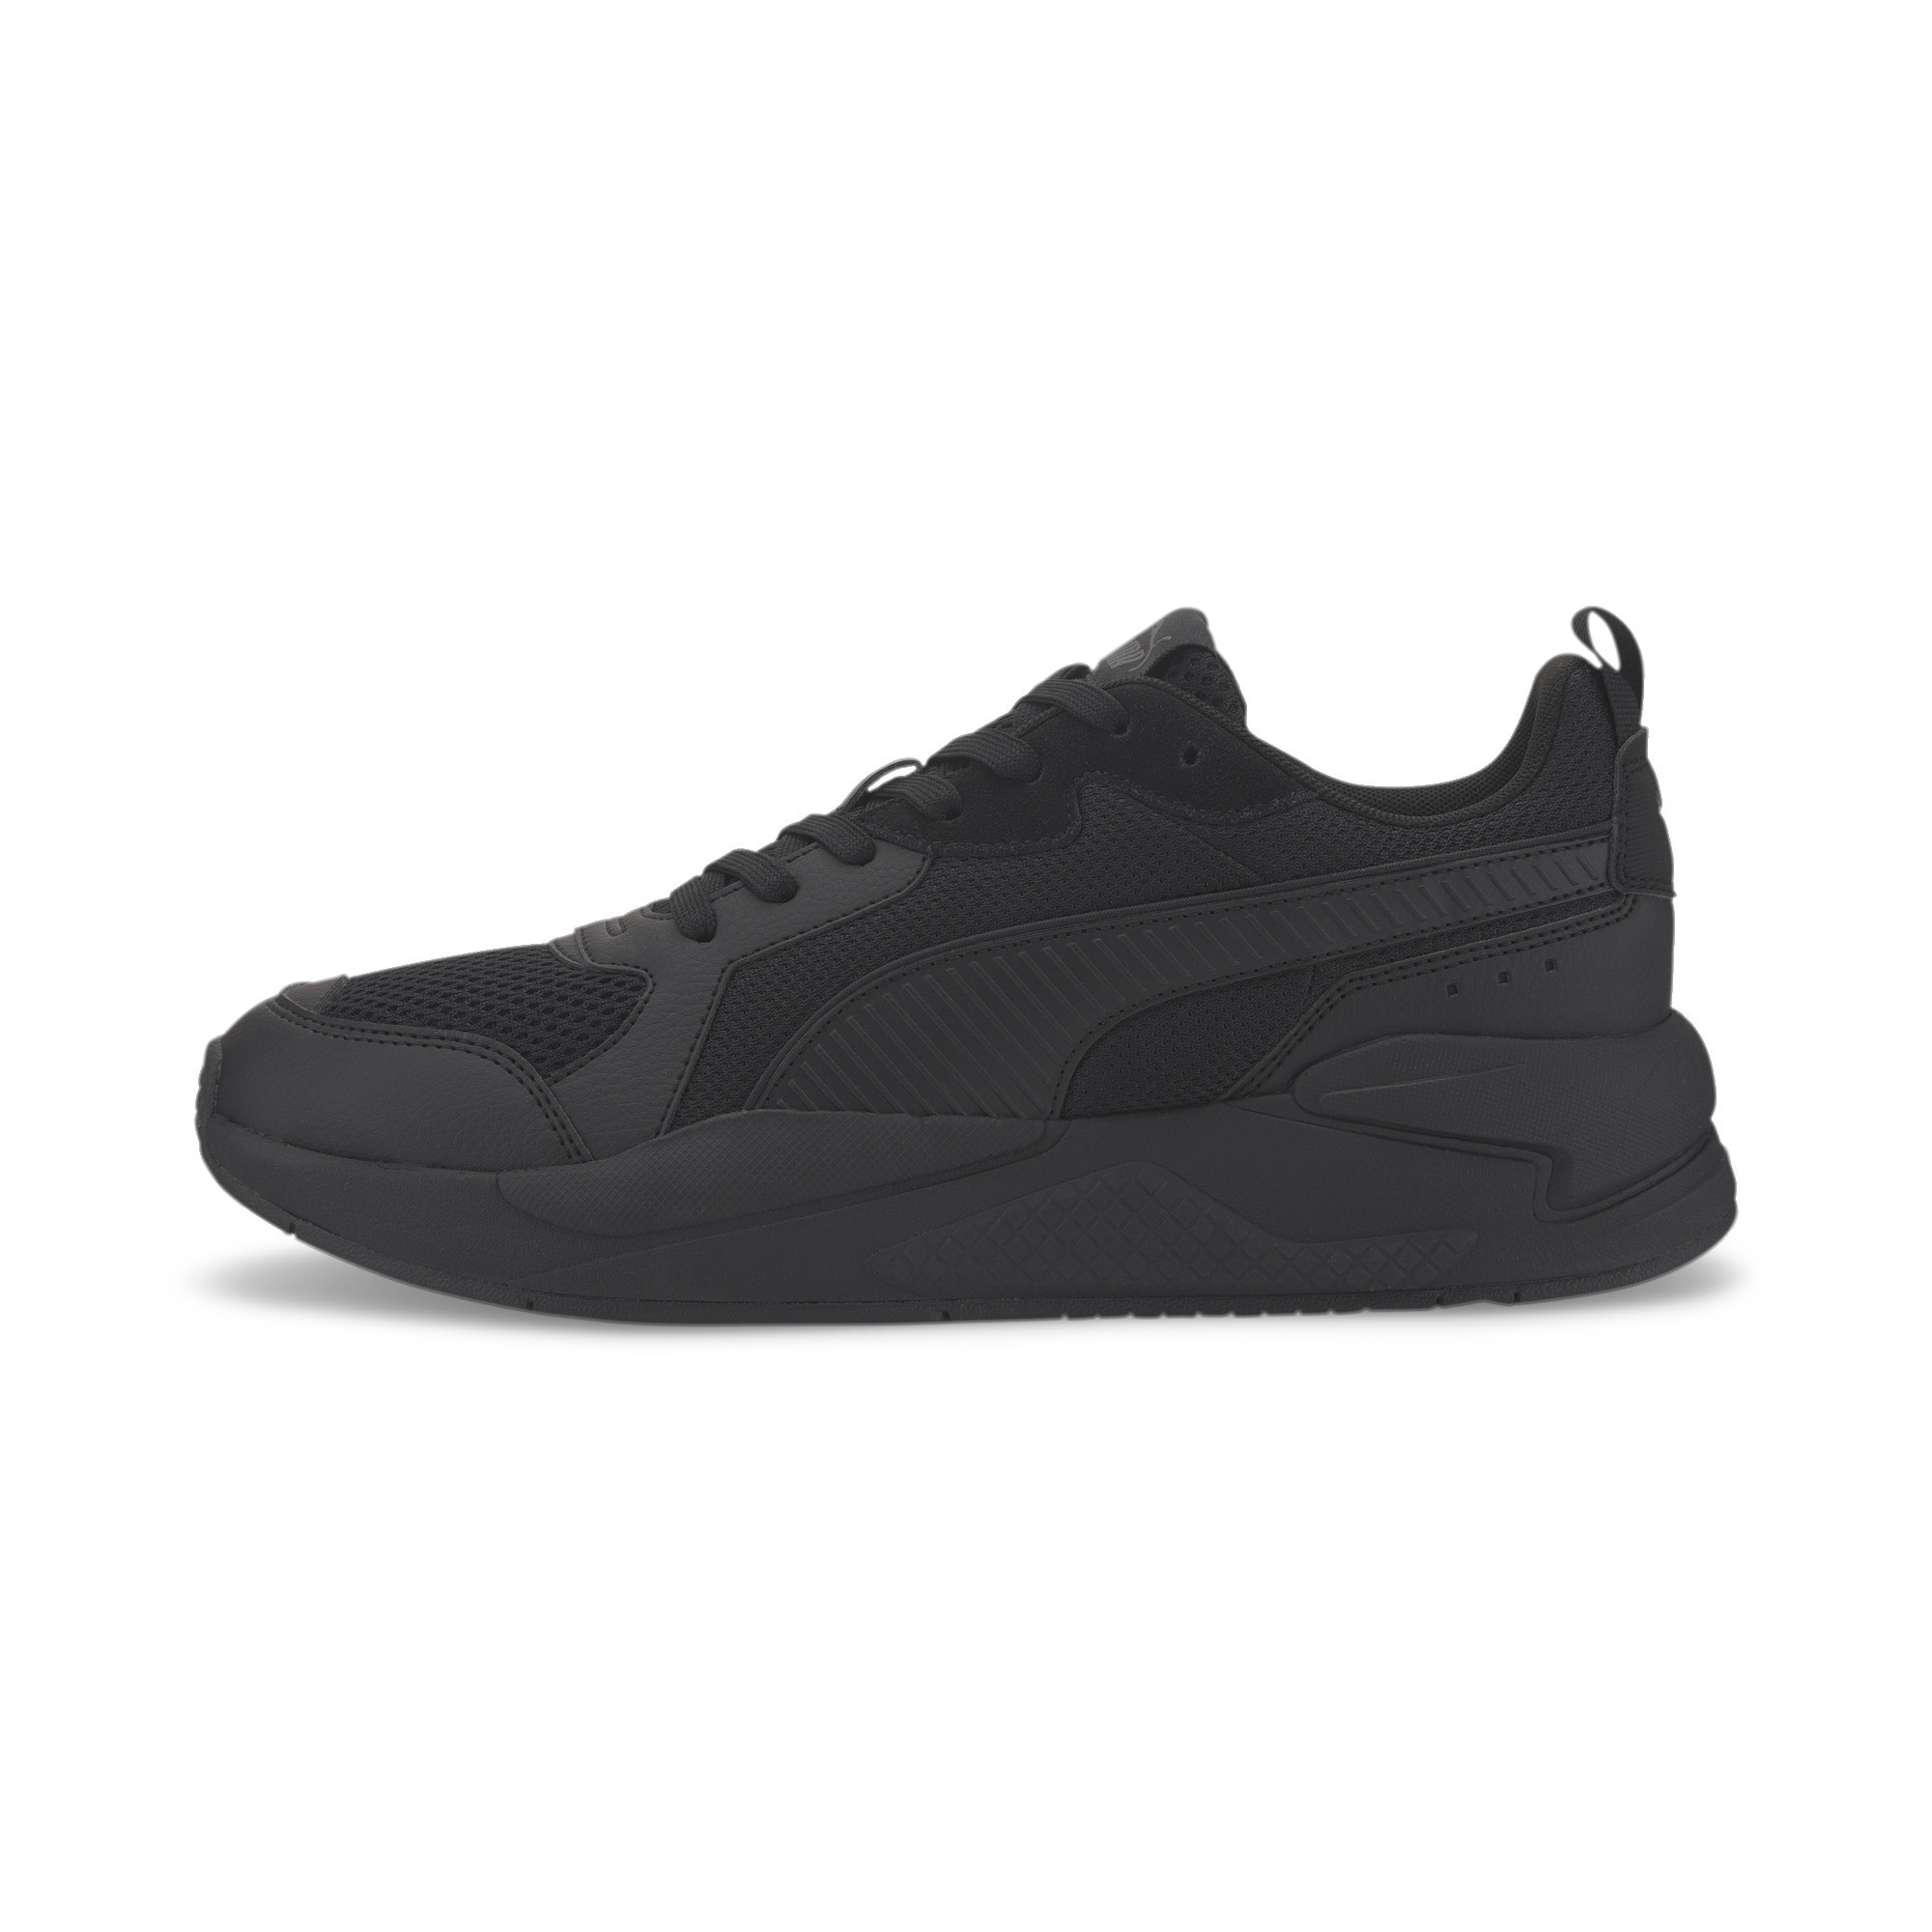 PUMA-Men-039-s-X-RAY-Sneakers thumbnail 14